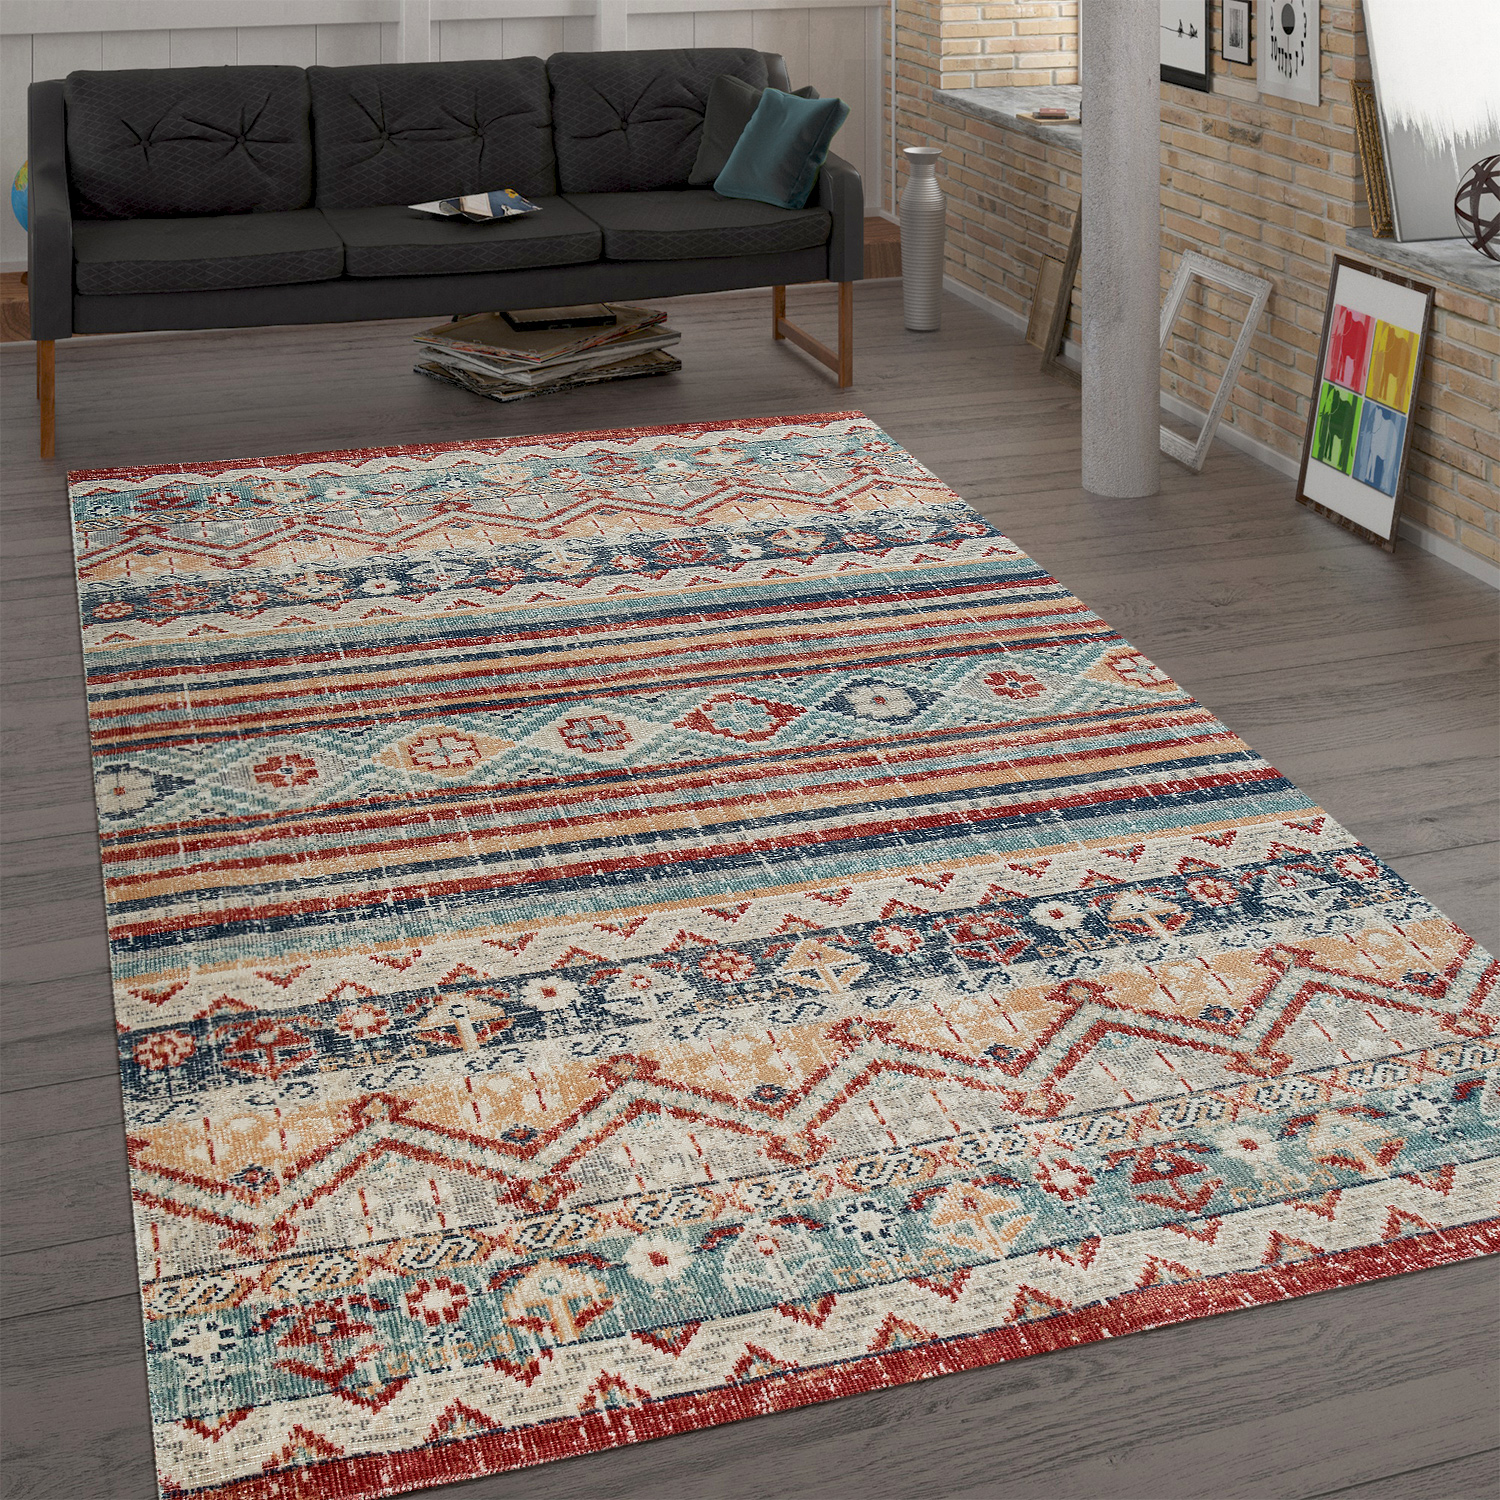 Trendy Flat-Weave Rug Vintage Oriental Used Effect Shabby Chic Multi-Coloured